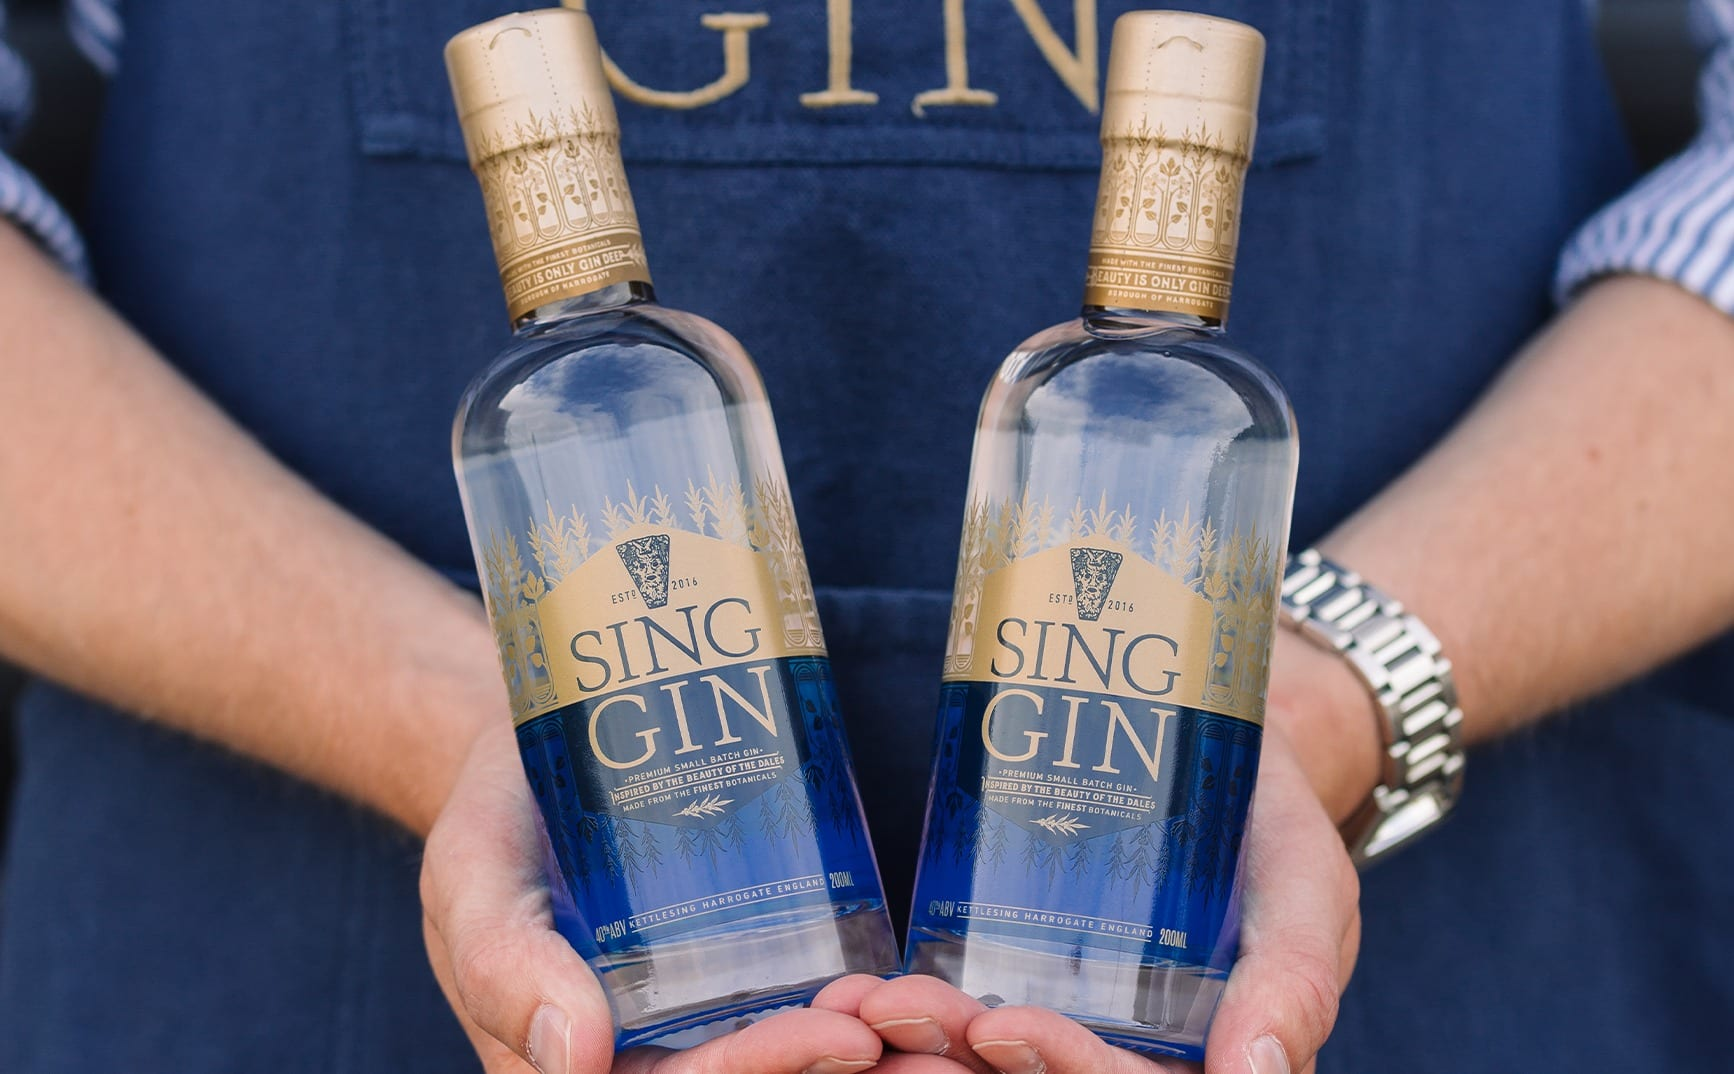 Sing Gin UK, Gin made from grapes, Best gin made from grapes